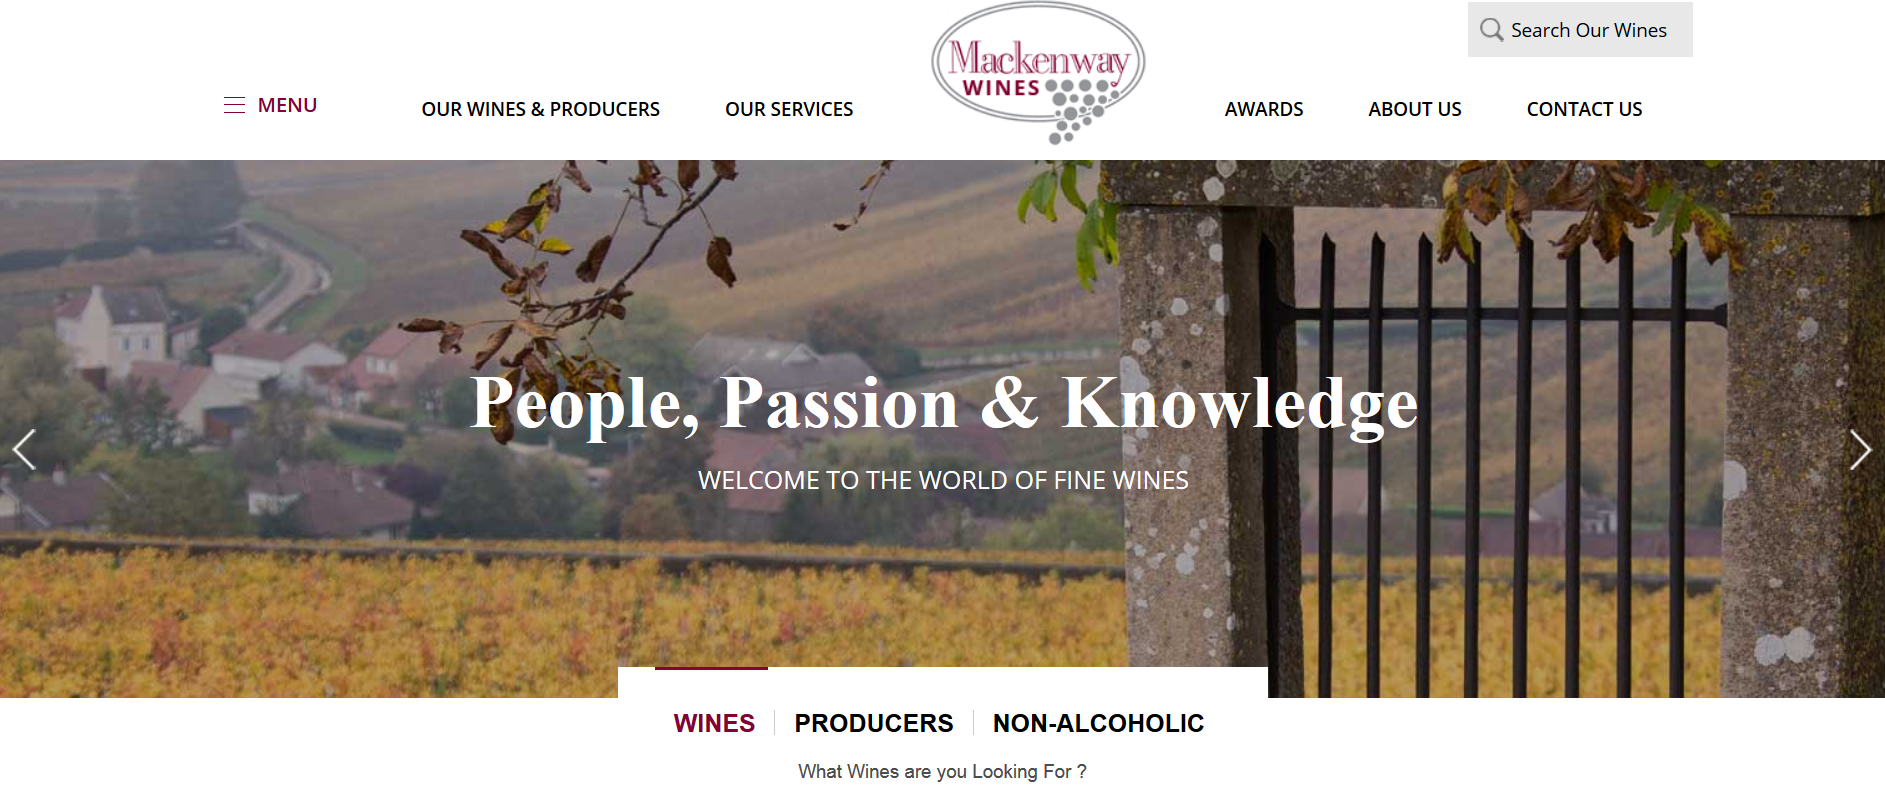 New Website - www.Mackenway.com